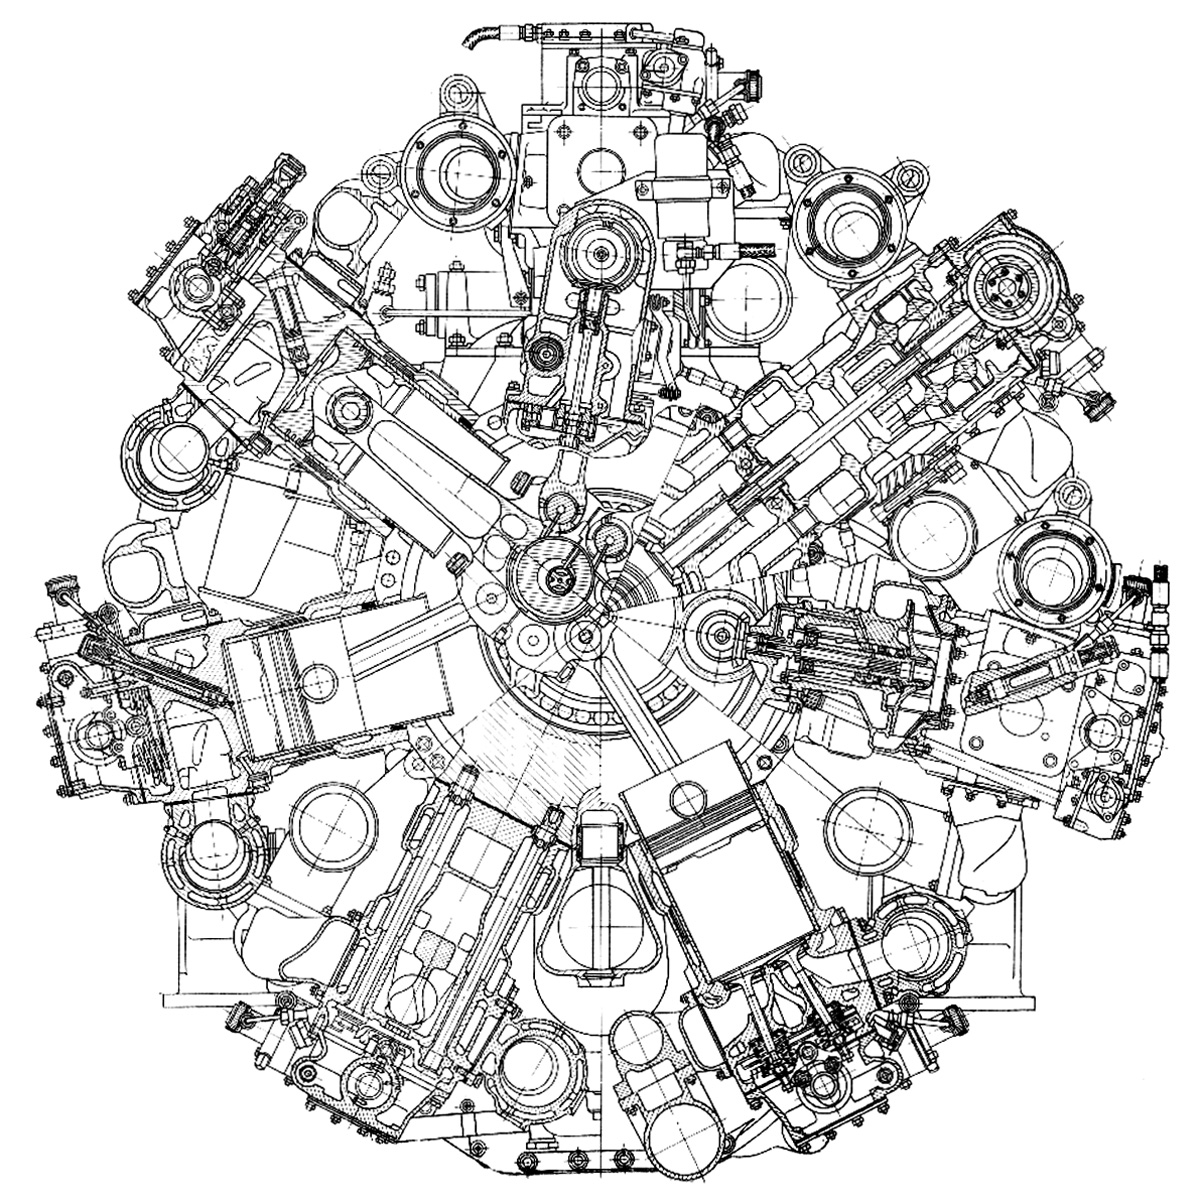 The Best Free Engine Drawing Images Download From